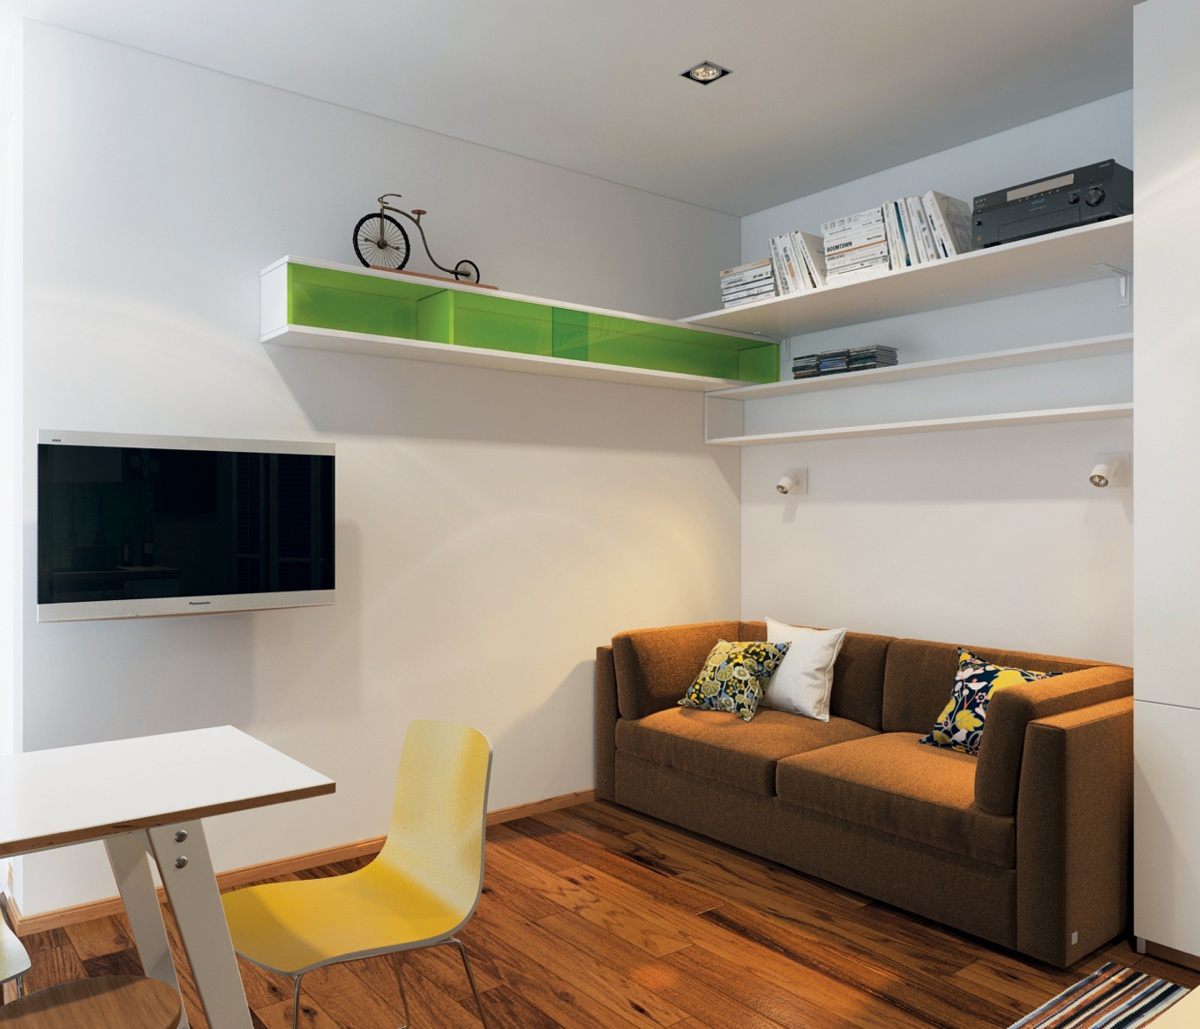 Apartment Living Room: Homes Under 400 Square Feet: 5 Apartments That Squeeze